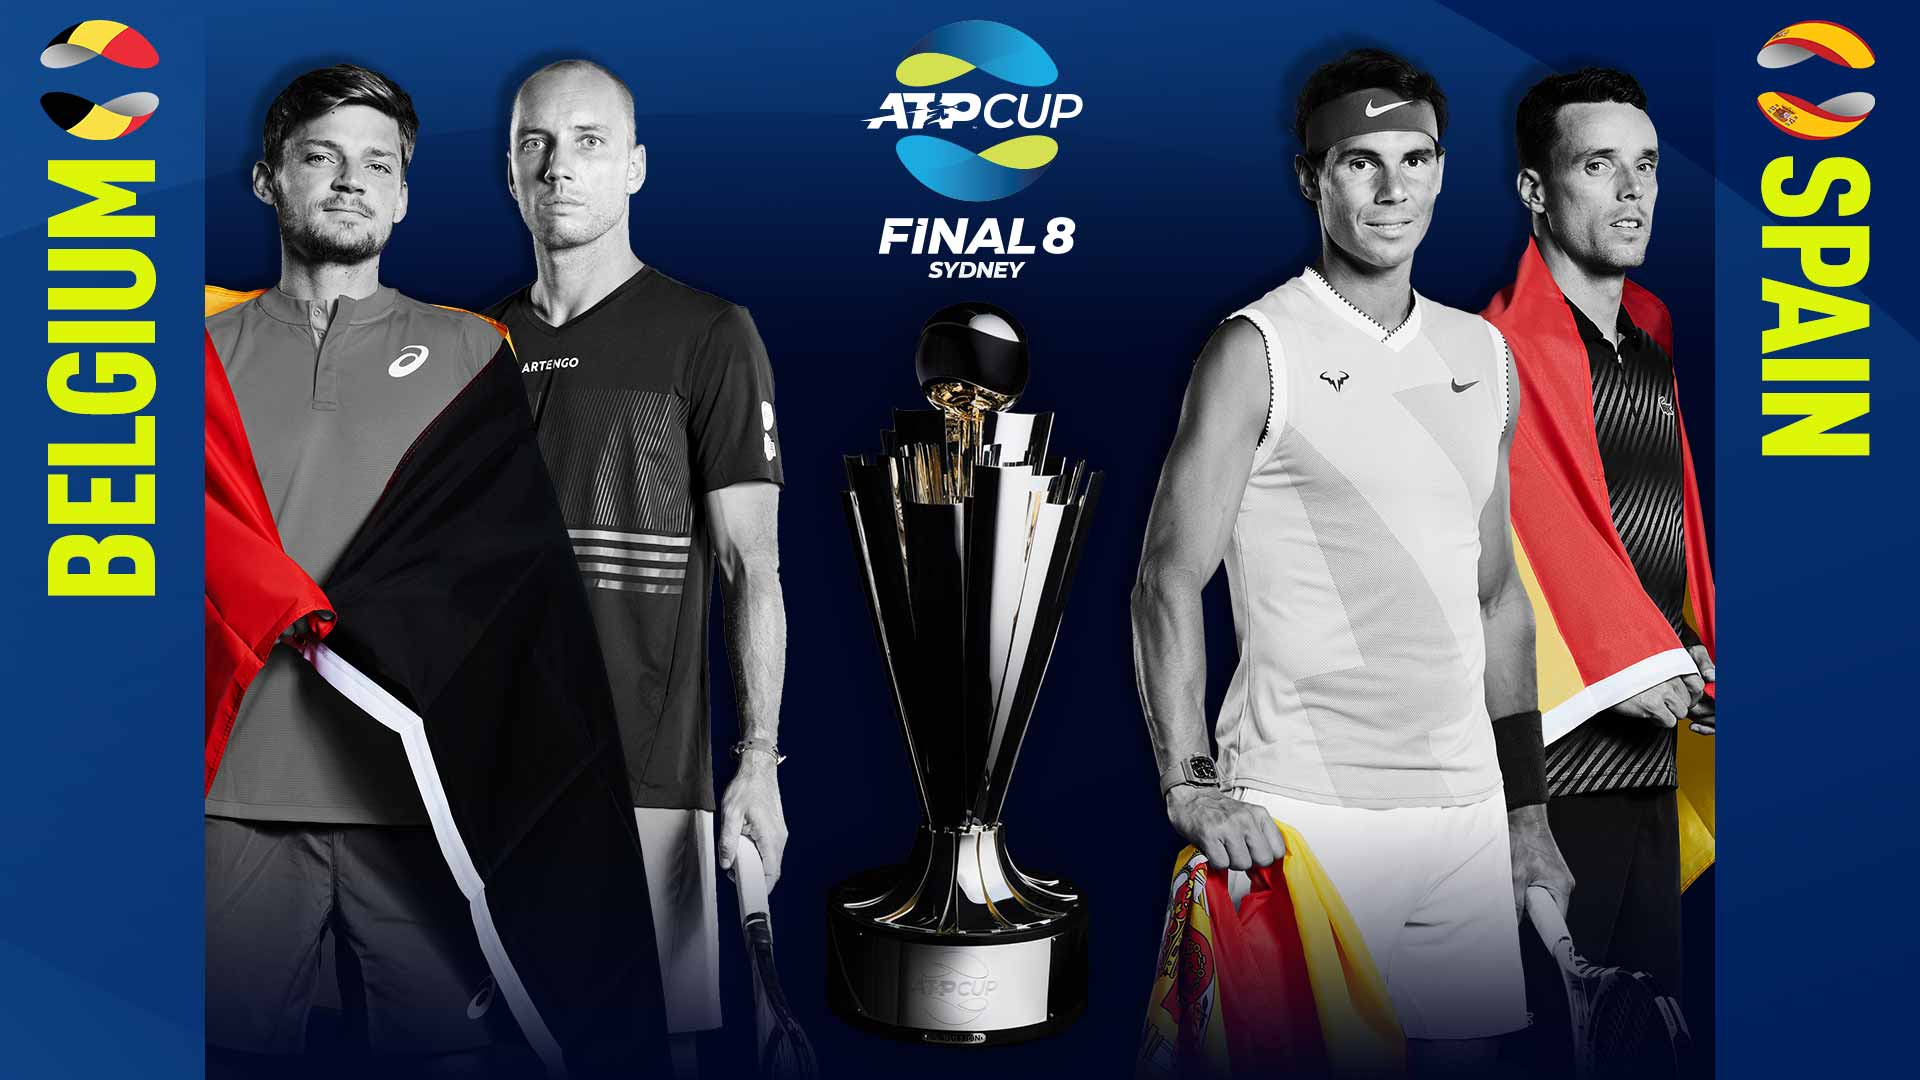 Belgium and Spain will meet in the night session on 10 January at the ATP Cup.